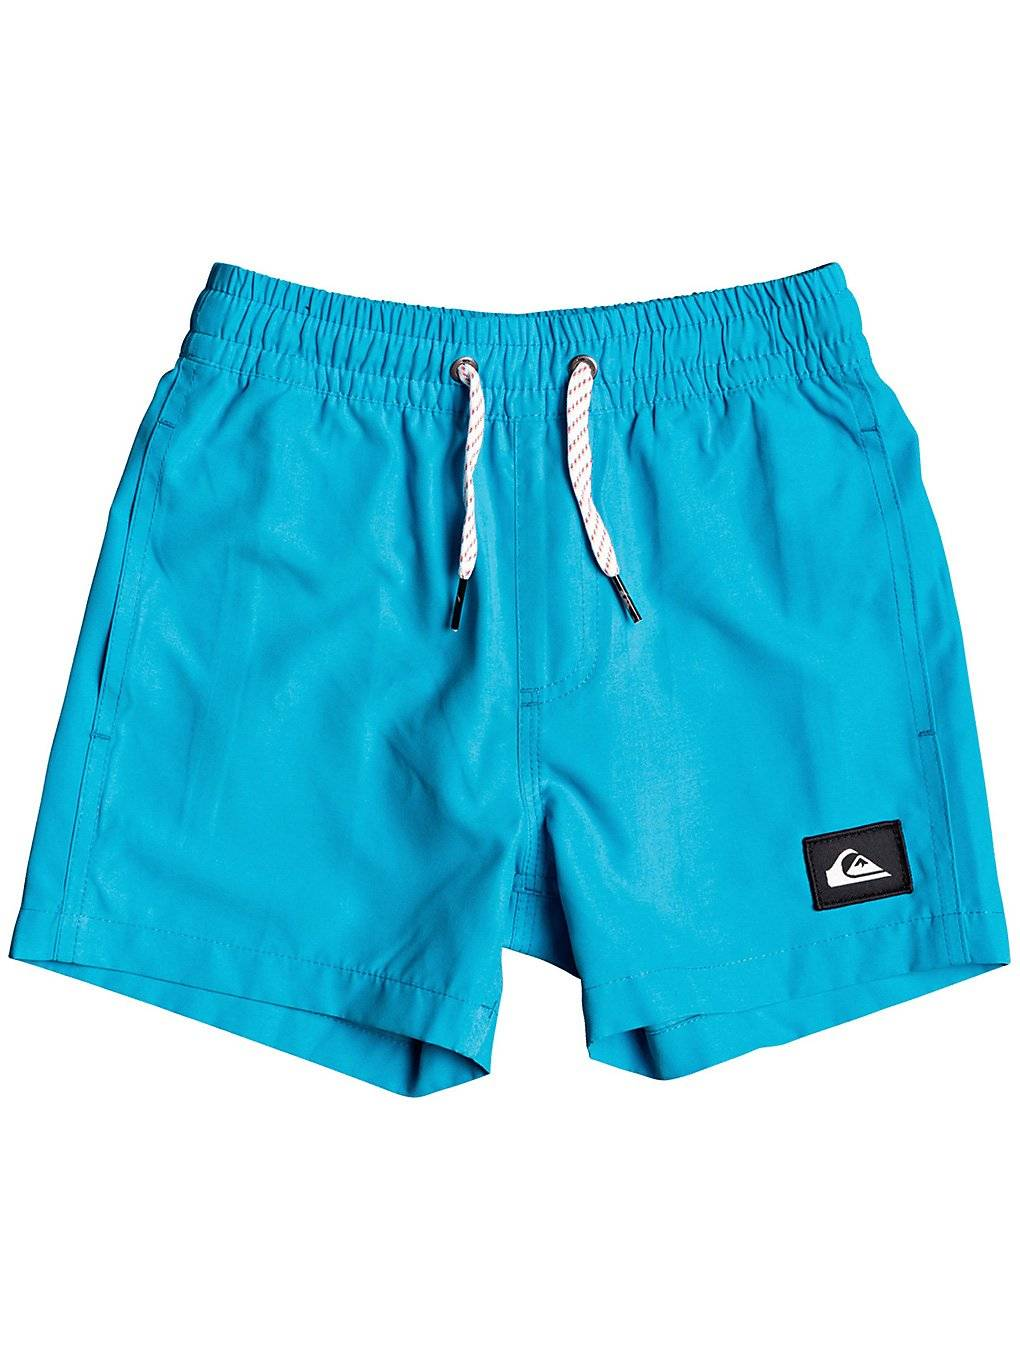 Quiksilver Everyday Volleys 11 Boardshorts mønster